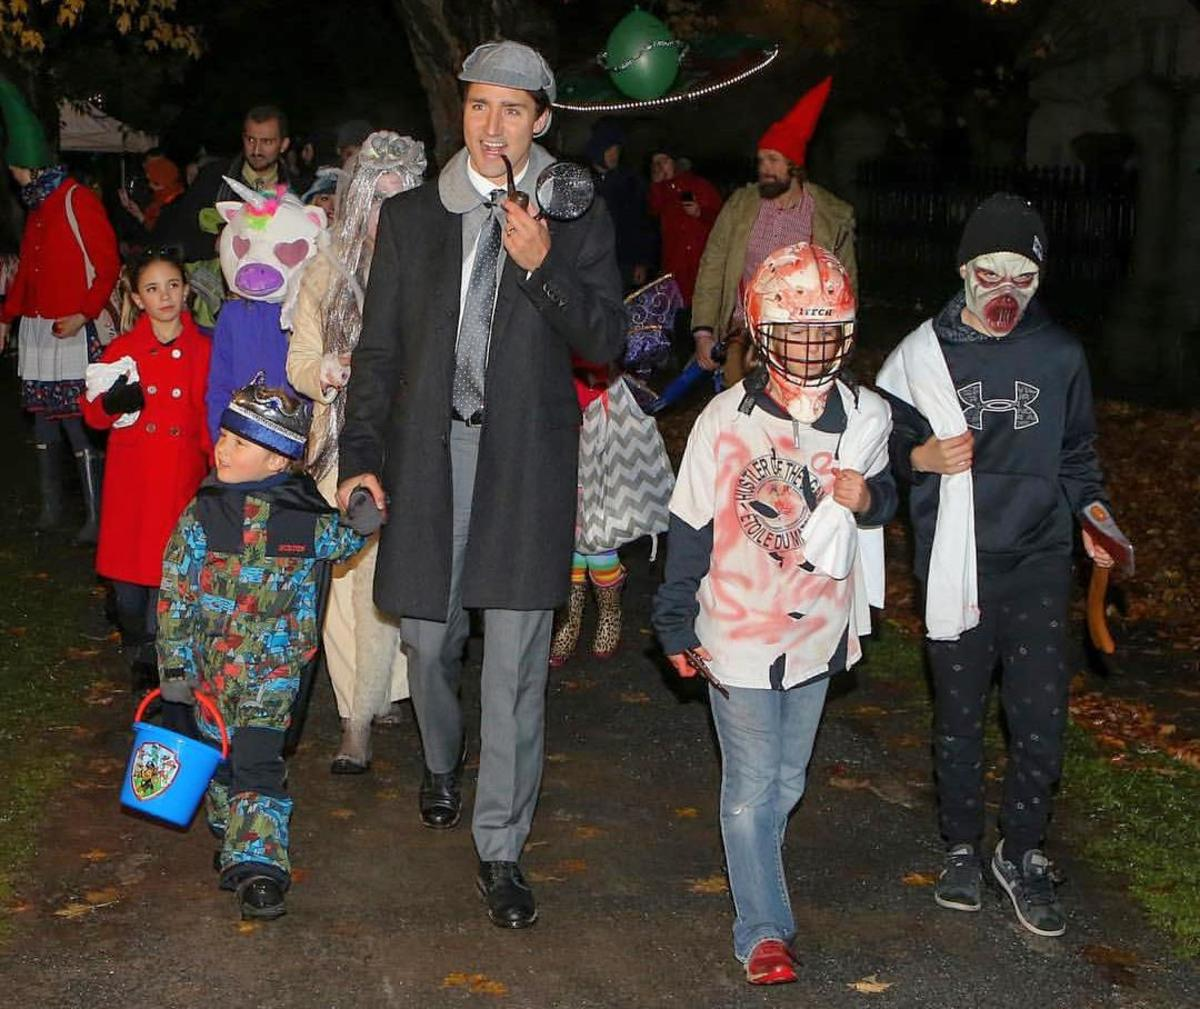 Prime Minister Trudeau dressed as Sherlock Holmes went trick or treating with his family